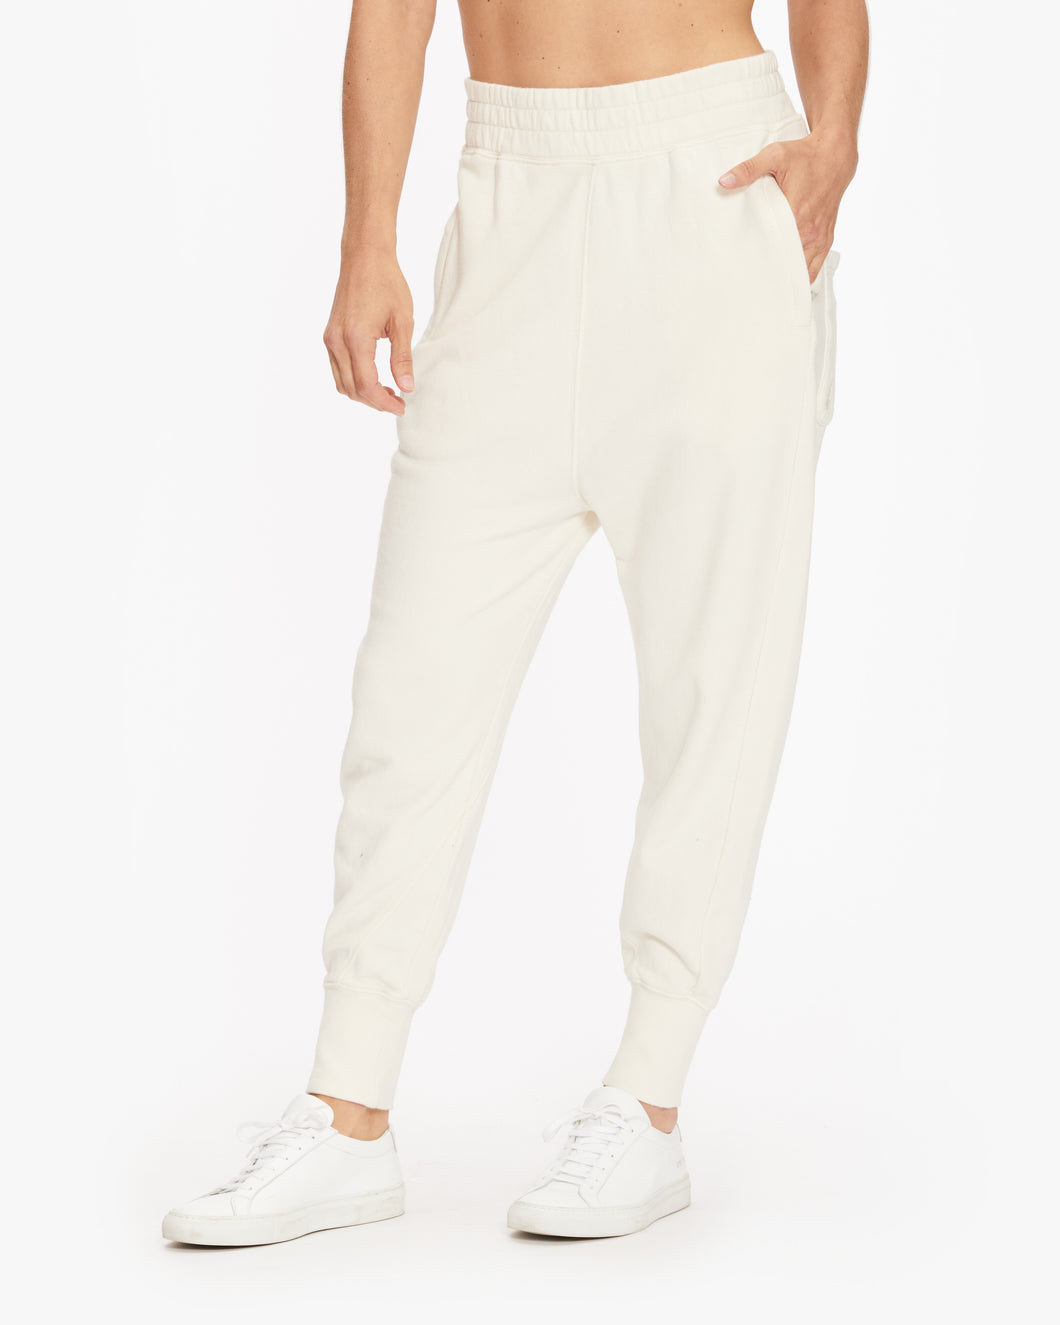 FREE PEOPLE FP MOVEMENT JUNE BUG PANT